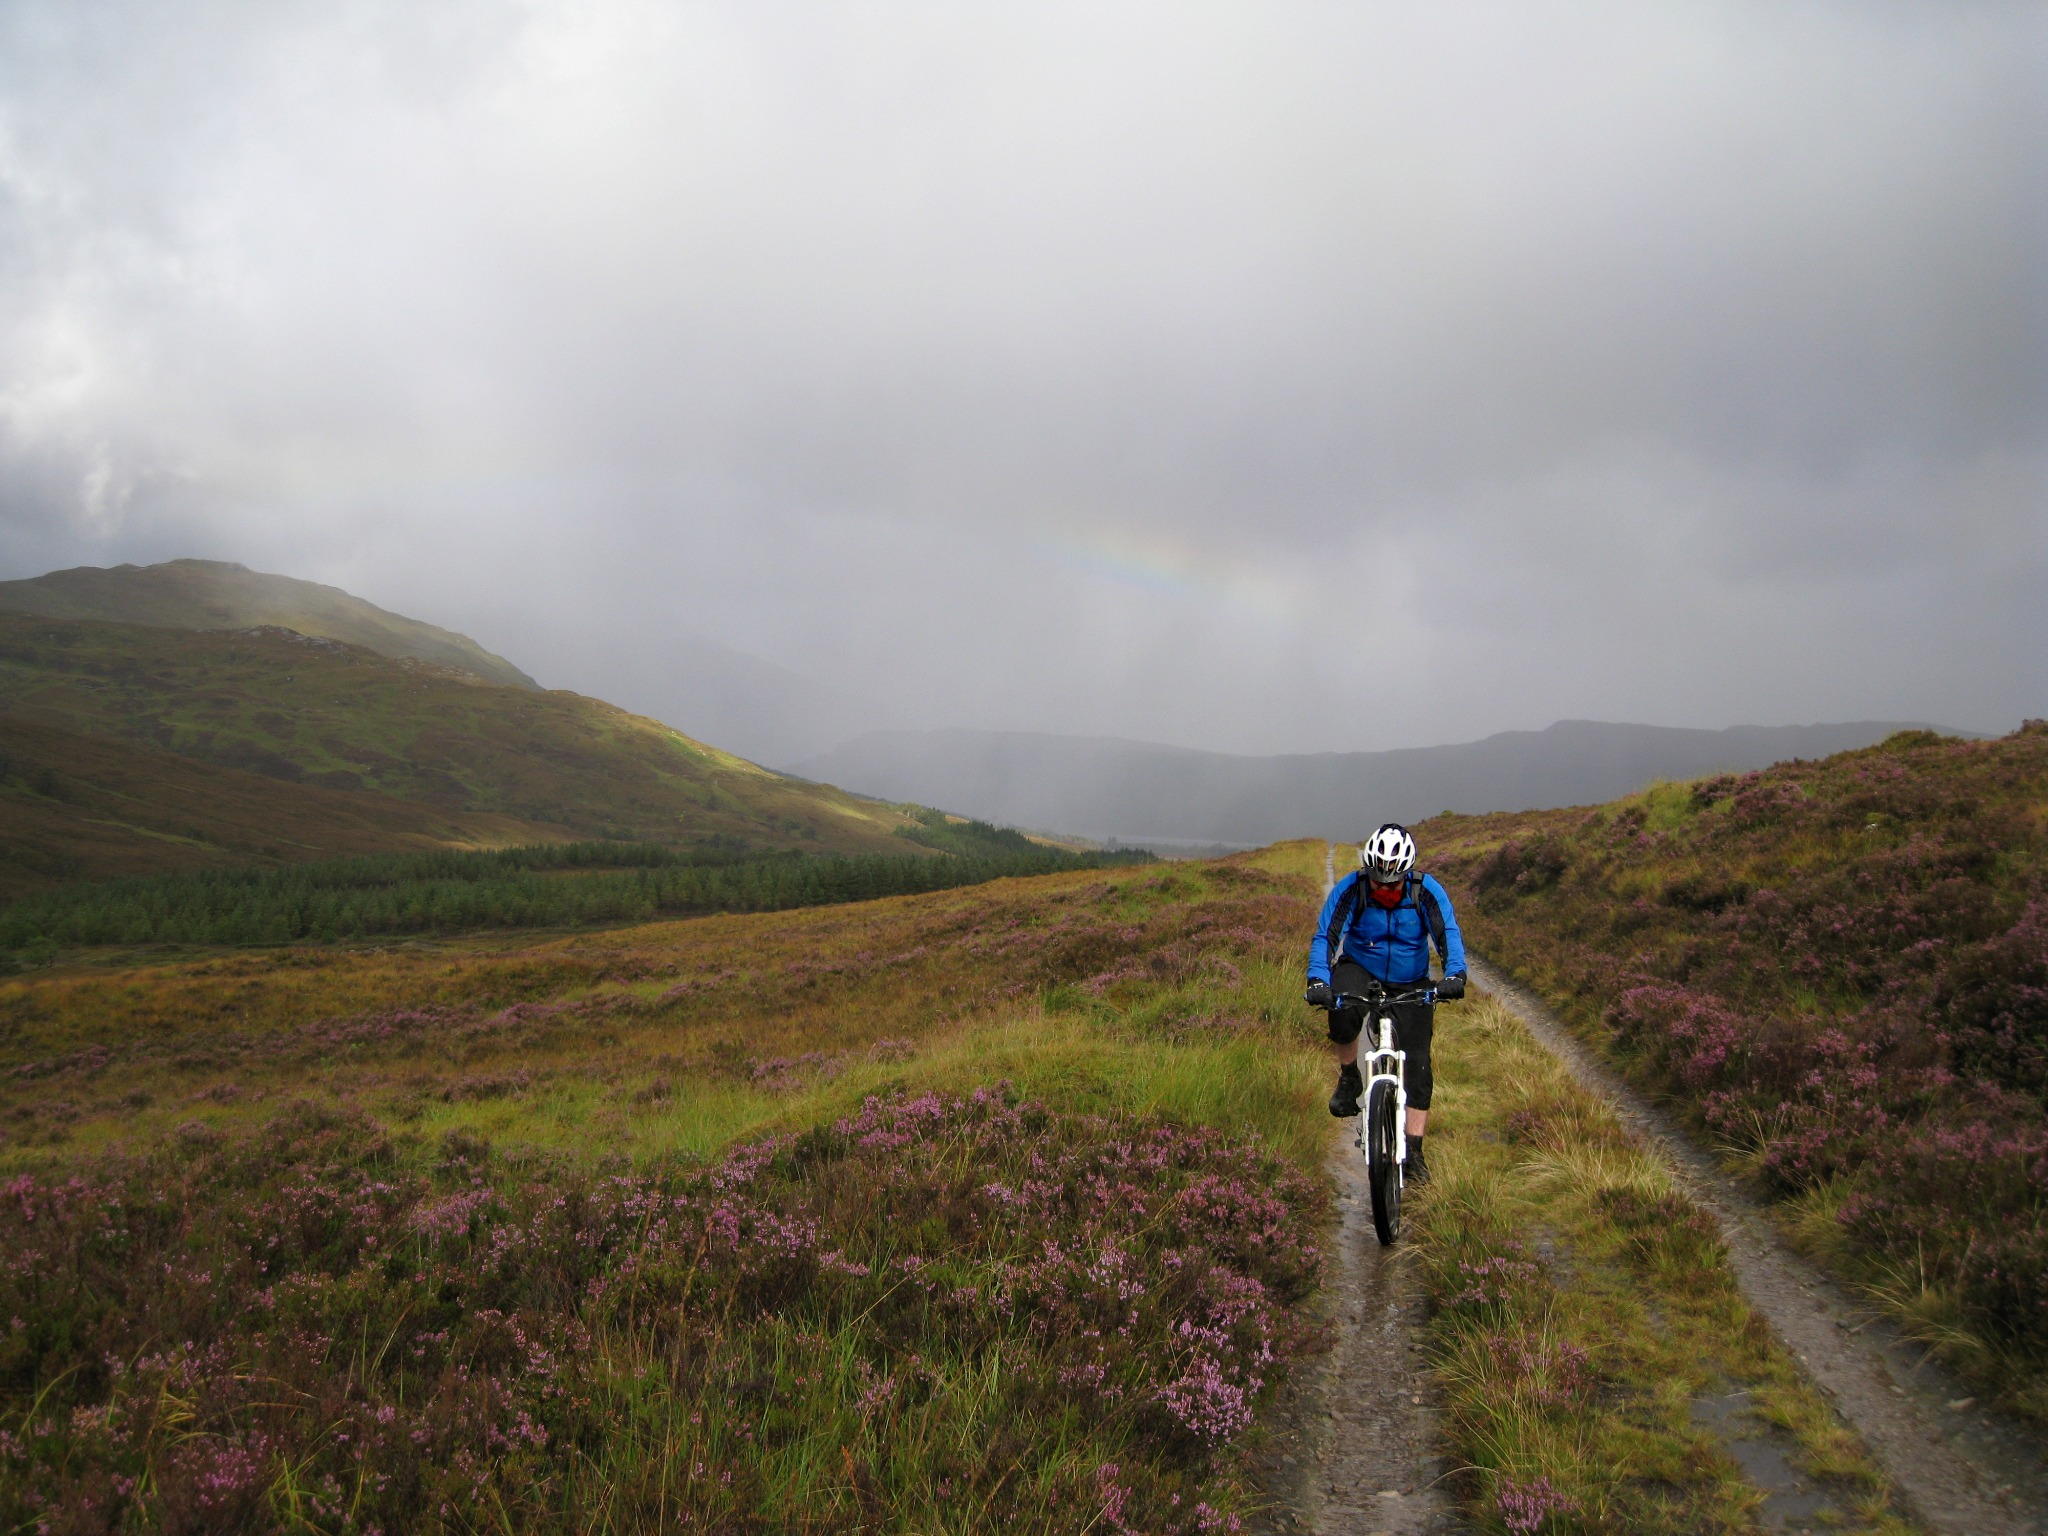 A cyclist riding in the rain in the Scottish Highlands